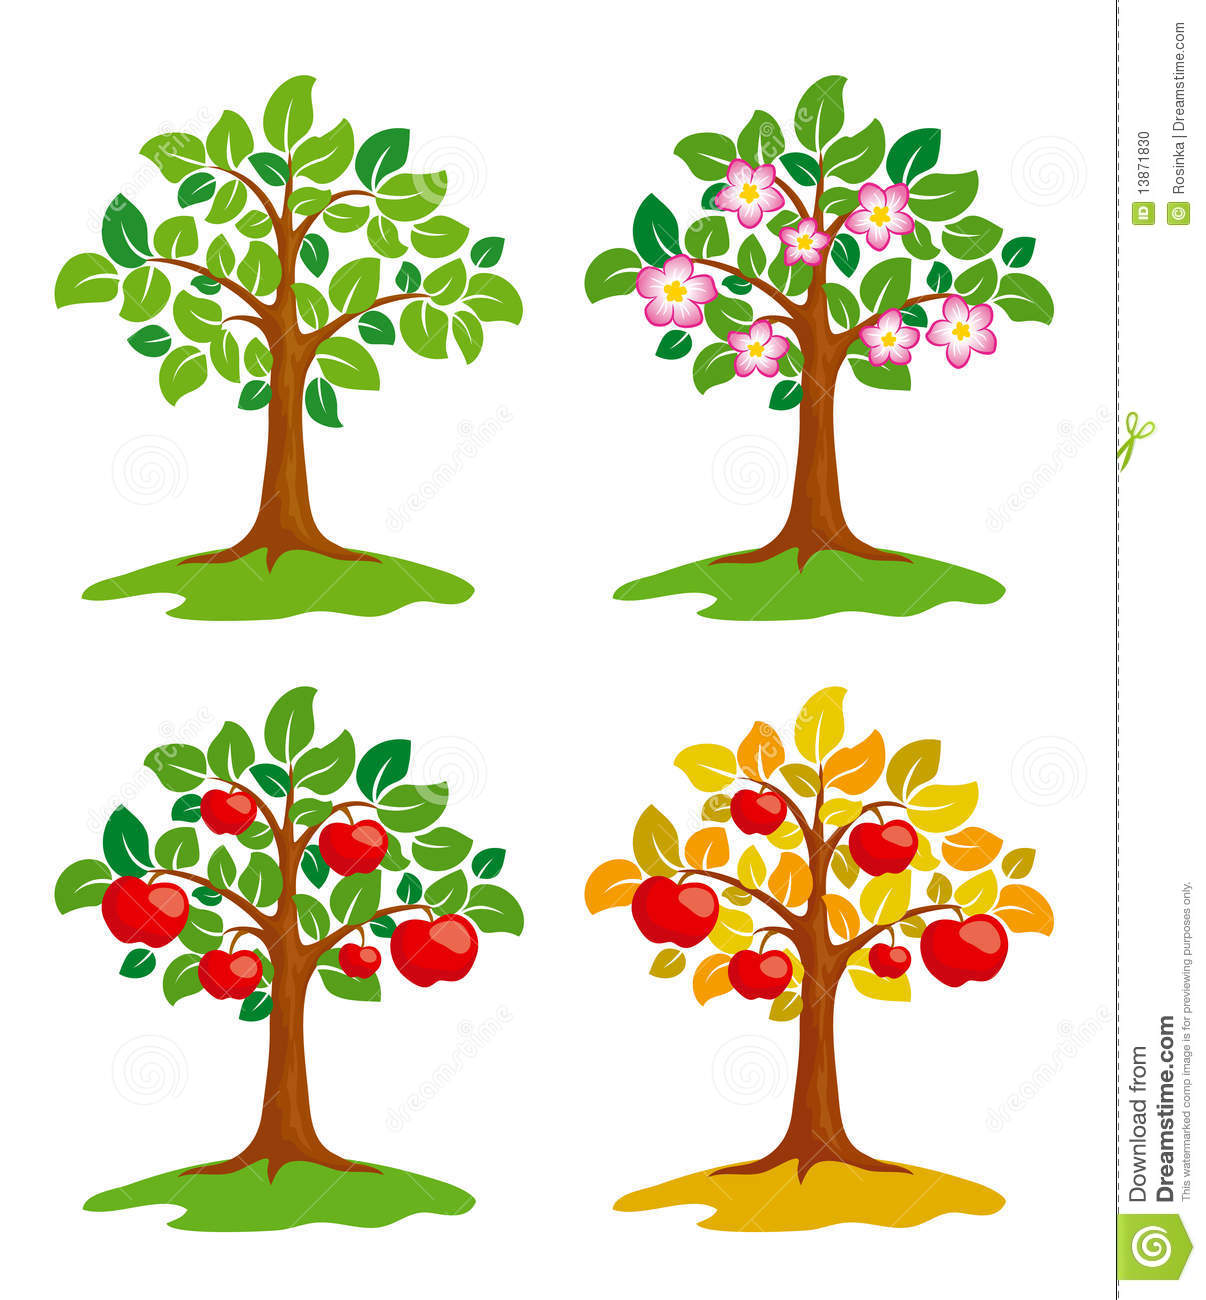 Stock Photo Apple Tree Different Seasons Image13871830 on Family Tree For Kids Template